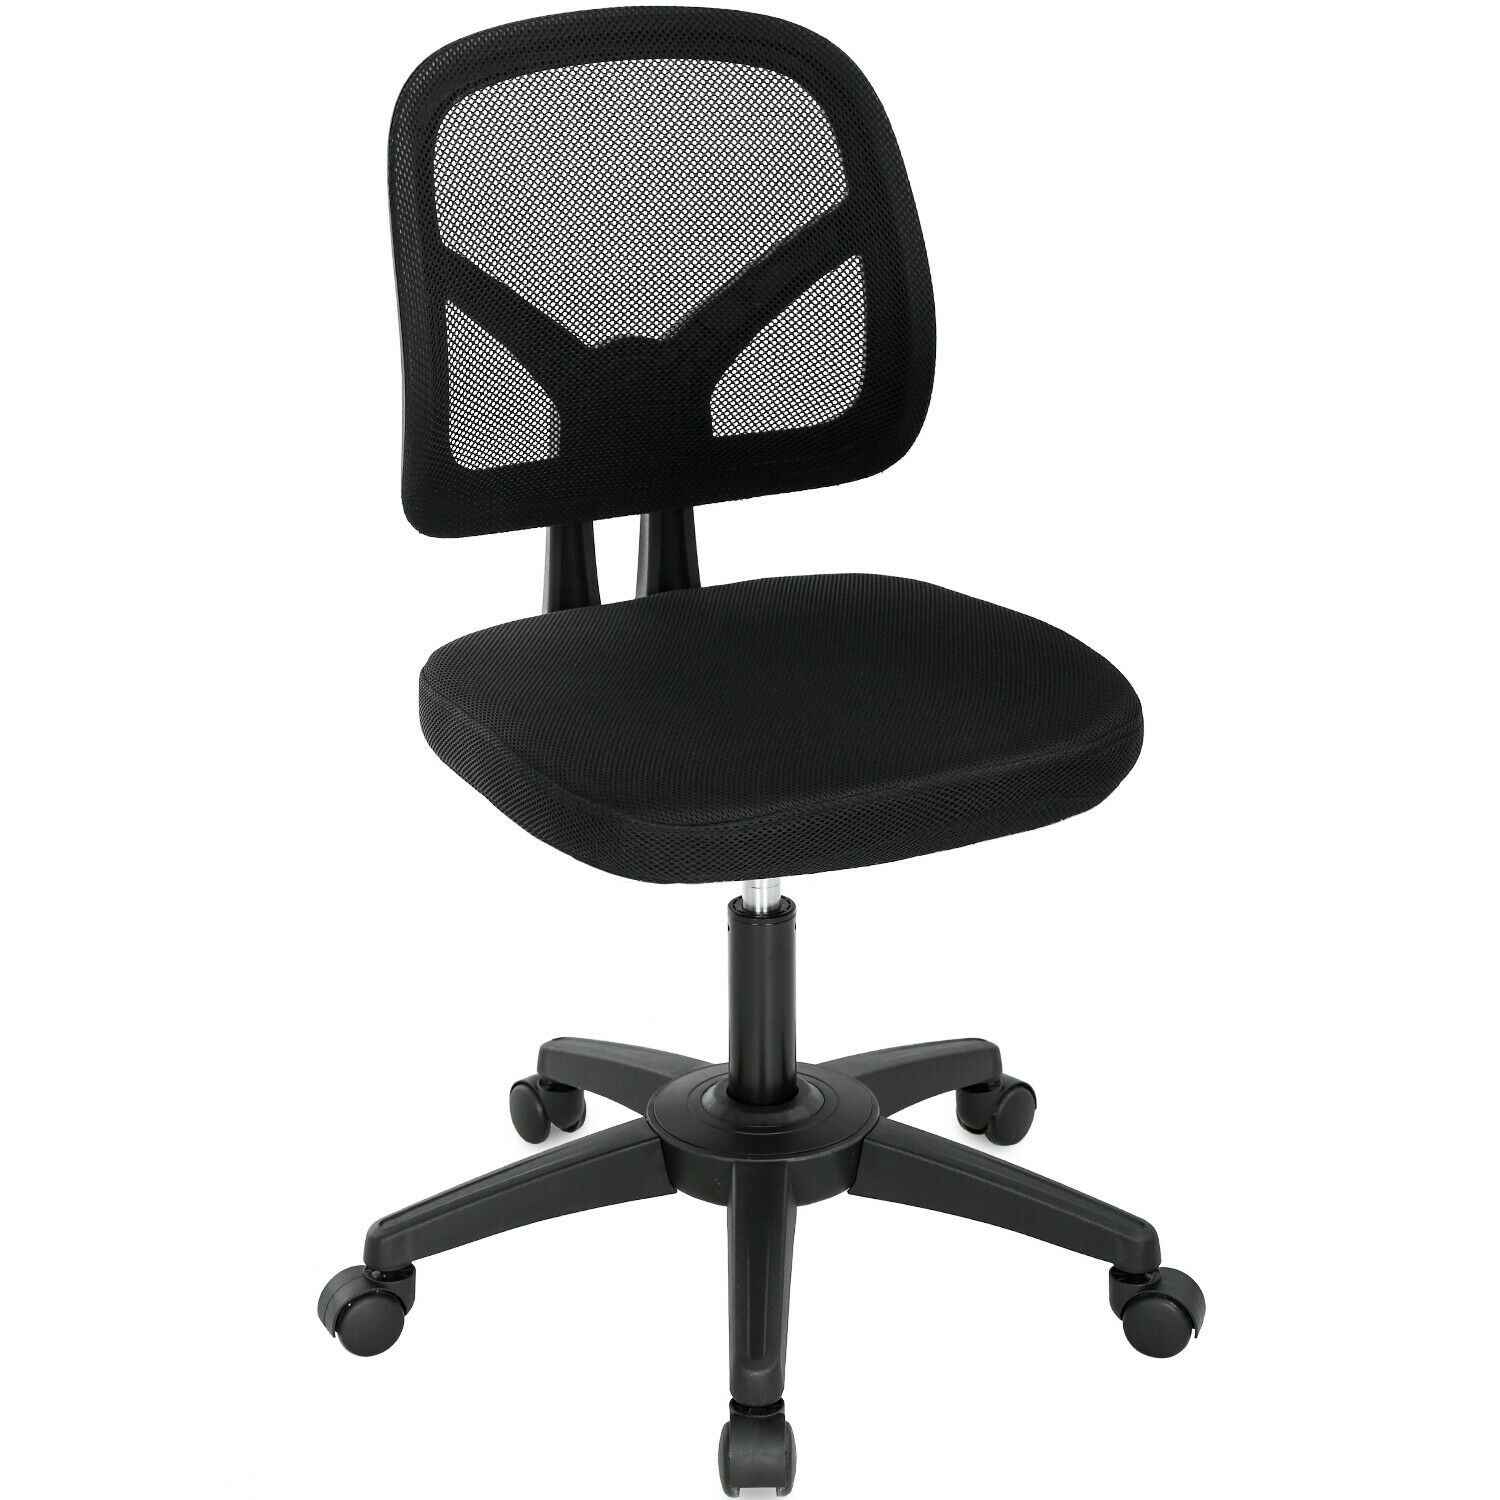 Mainstays Mesh Office Chair With Arms Multiple Colors For Sale Online Ebay